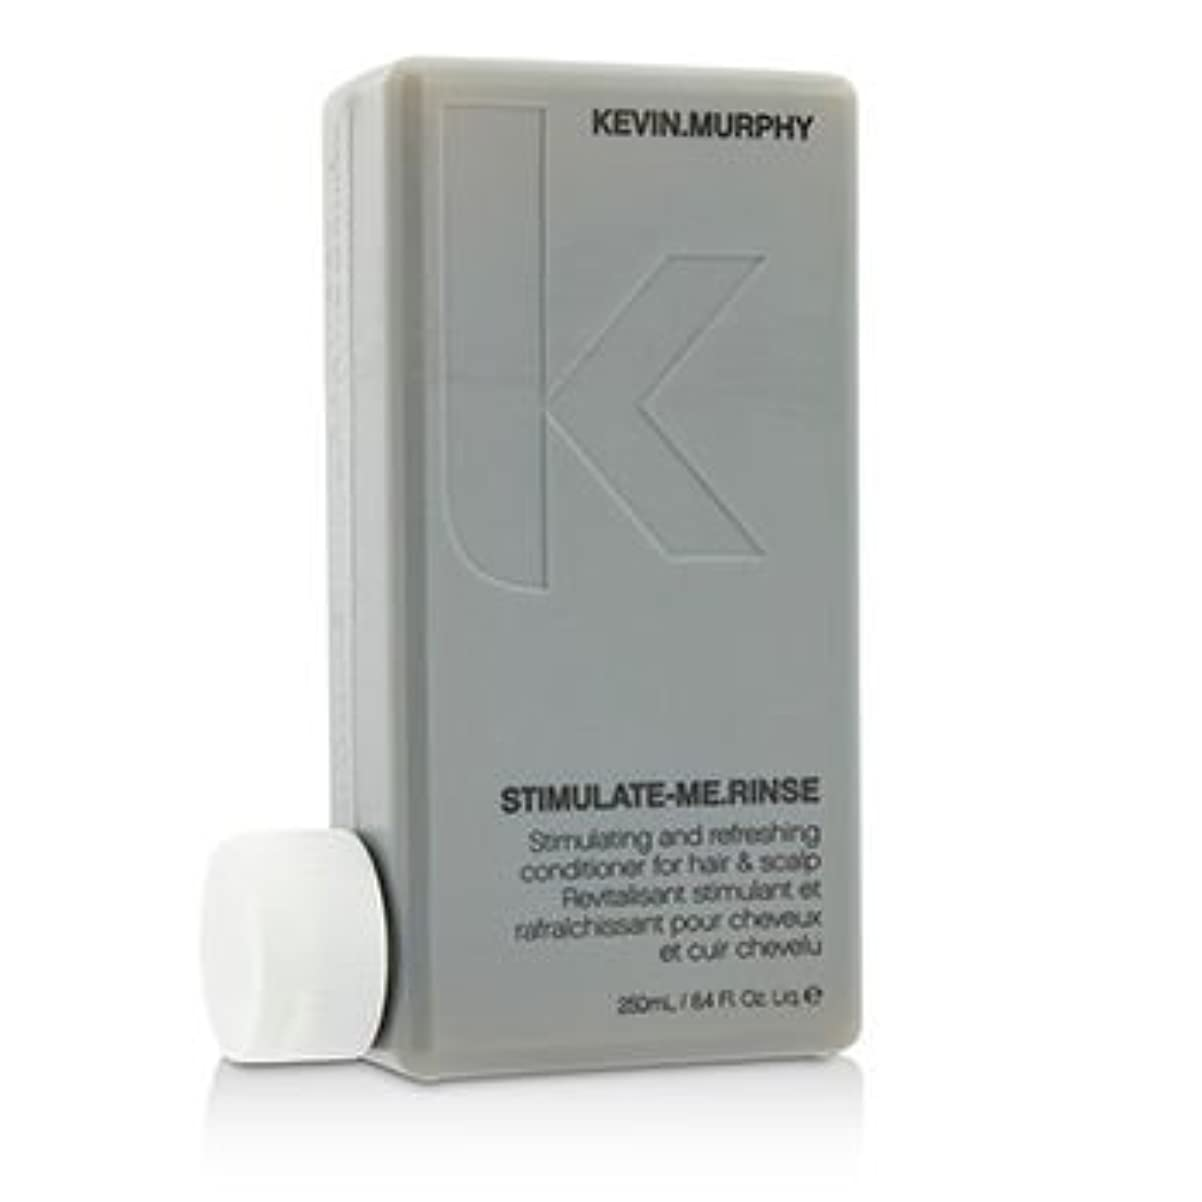 一月却下する調停者[Kevin.Murphy] Stimulate-Me.Rinse (Stimulating and Refreshing Conditioner - For Hair & Scalp) 250ml/8.4oz